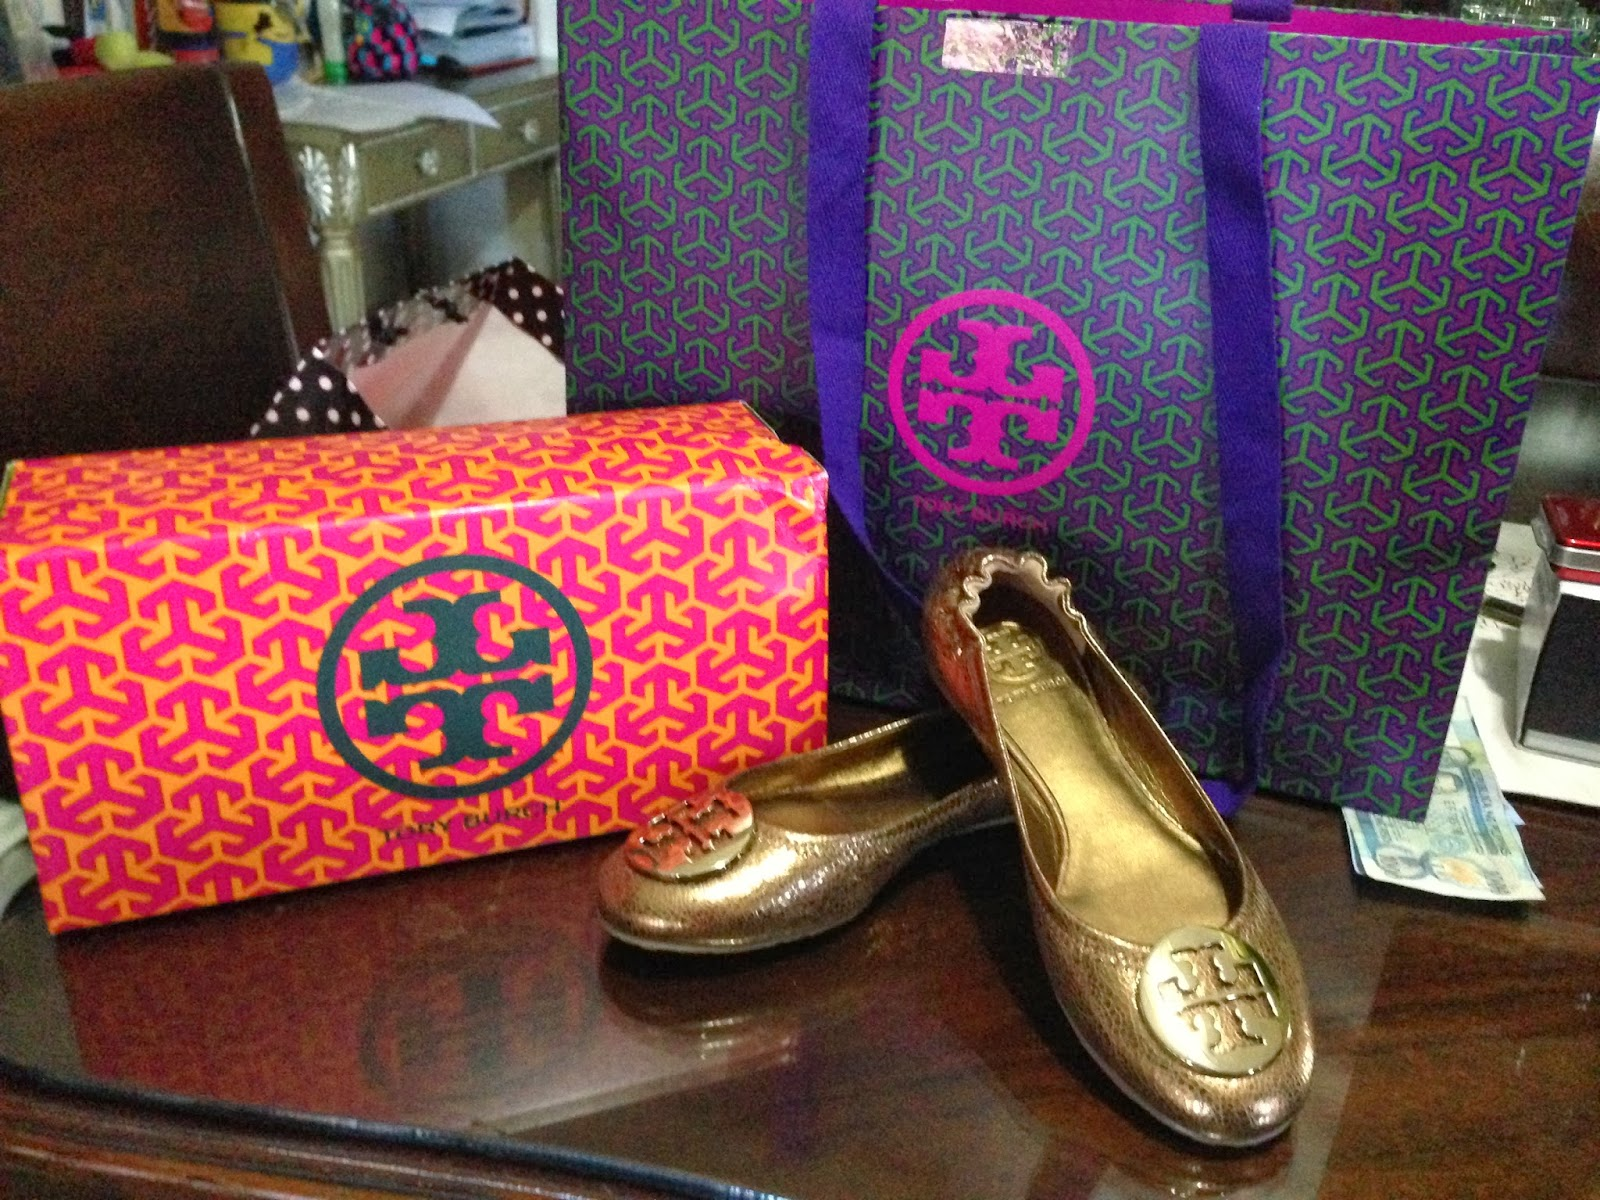 Mom's shopping find: Tory Burch flats for everyday use (to replace her old  fitflop)